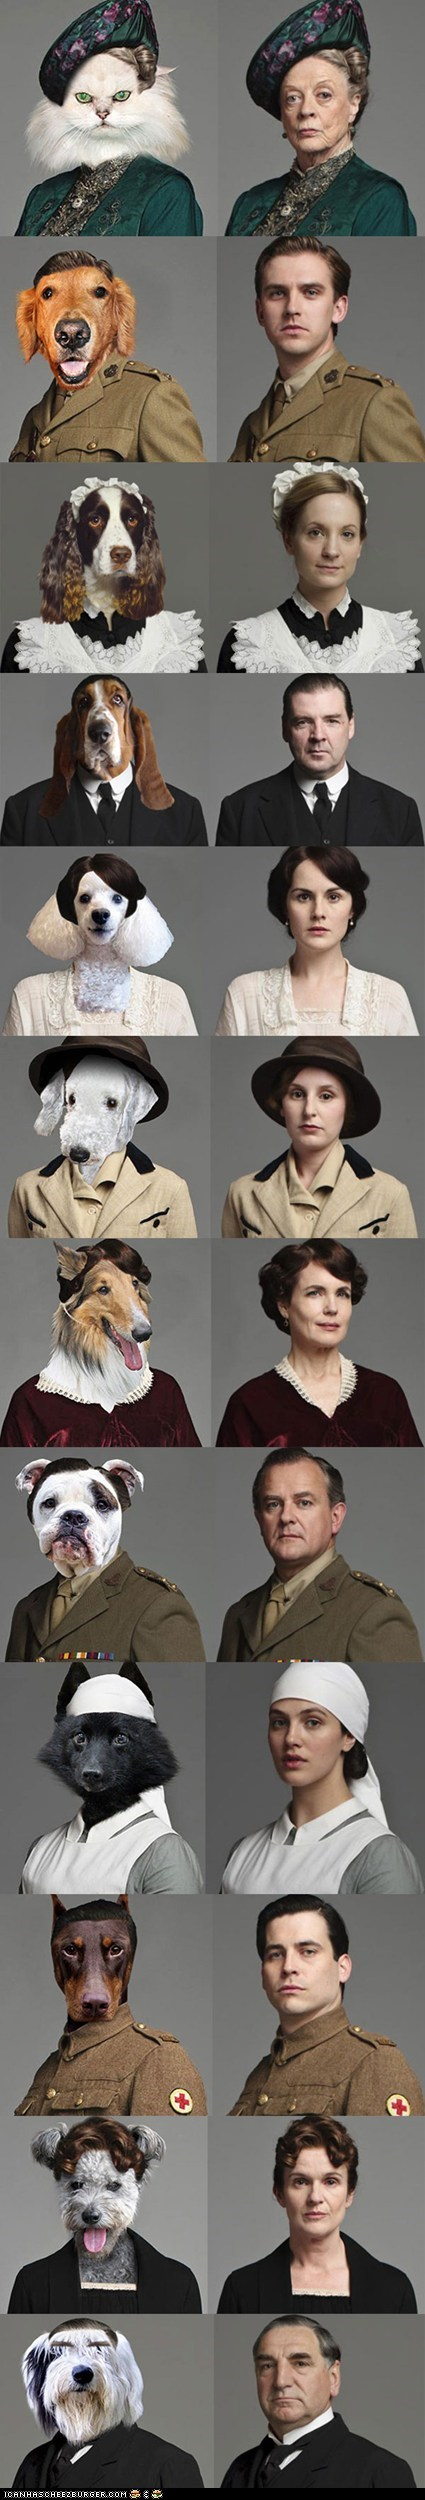 best of the week,Cats,dogs,downton abbey,Hall of Fame,look alikes,photoshopped,TV